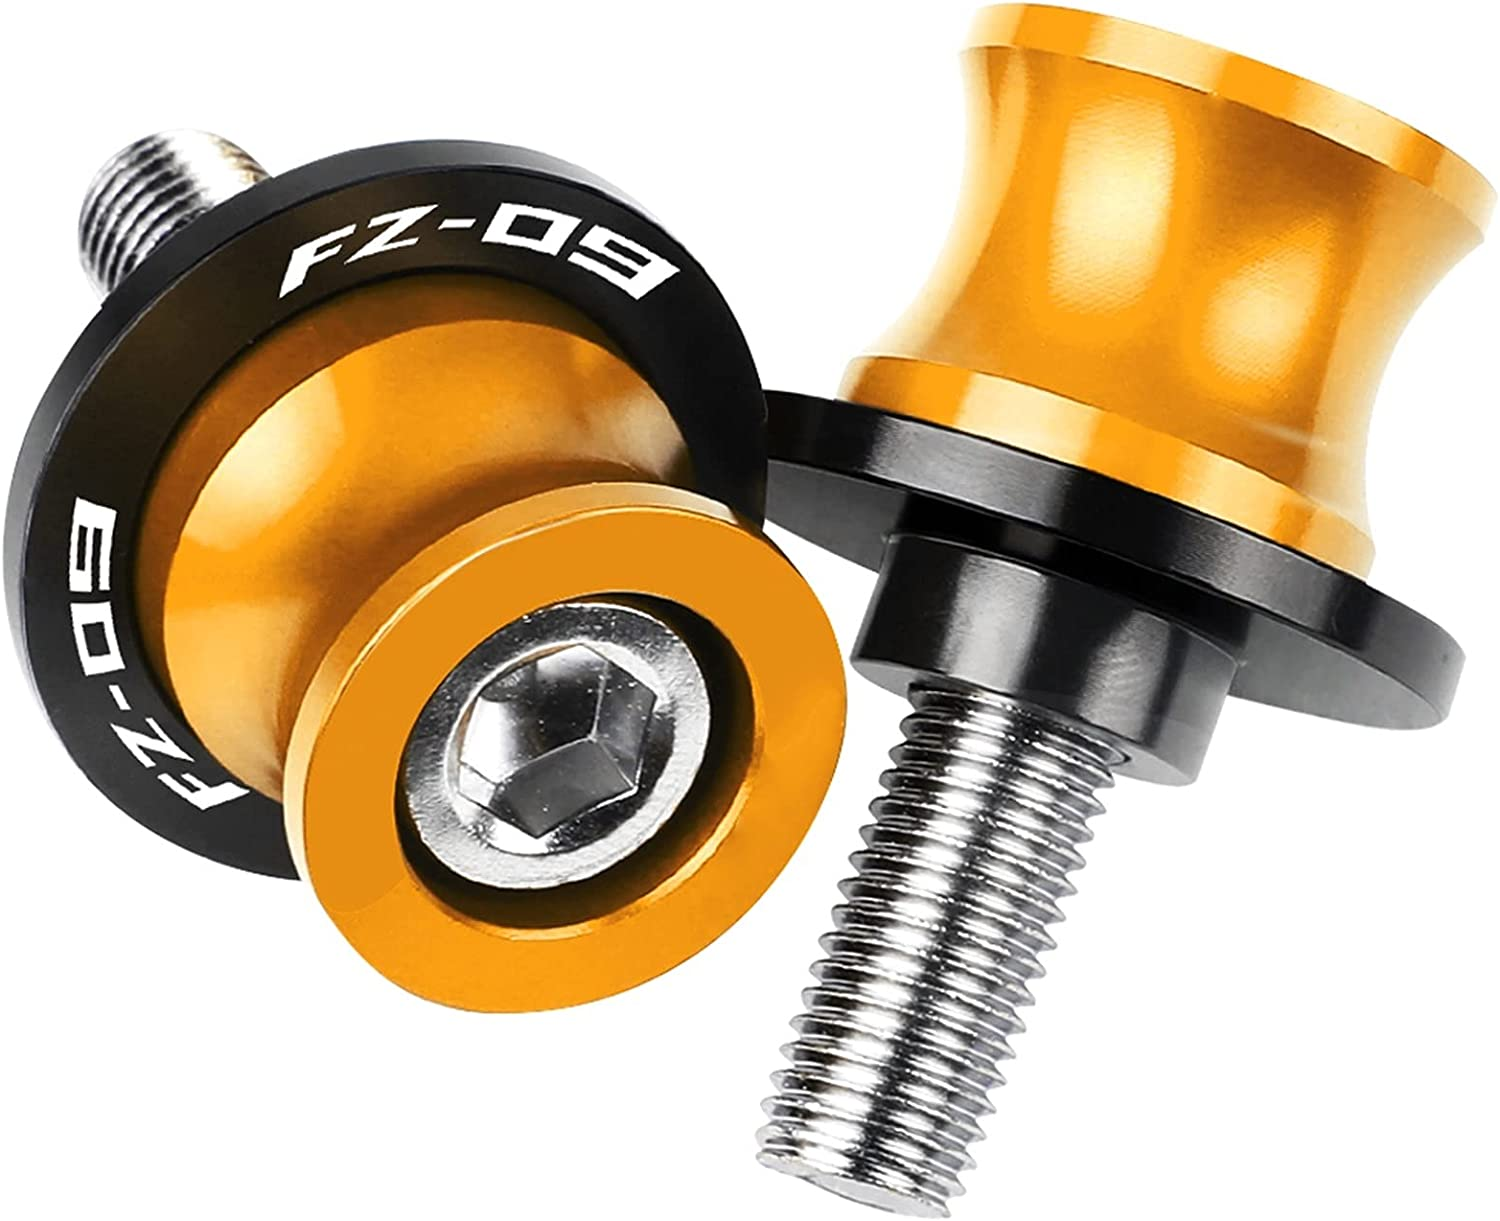 Motorcycle Swing Arm Spool For 2013-2021 FZ09 Yamah-a Latest Excellence item